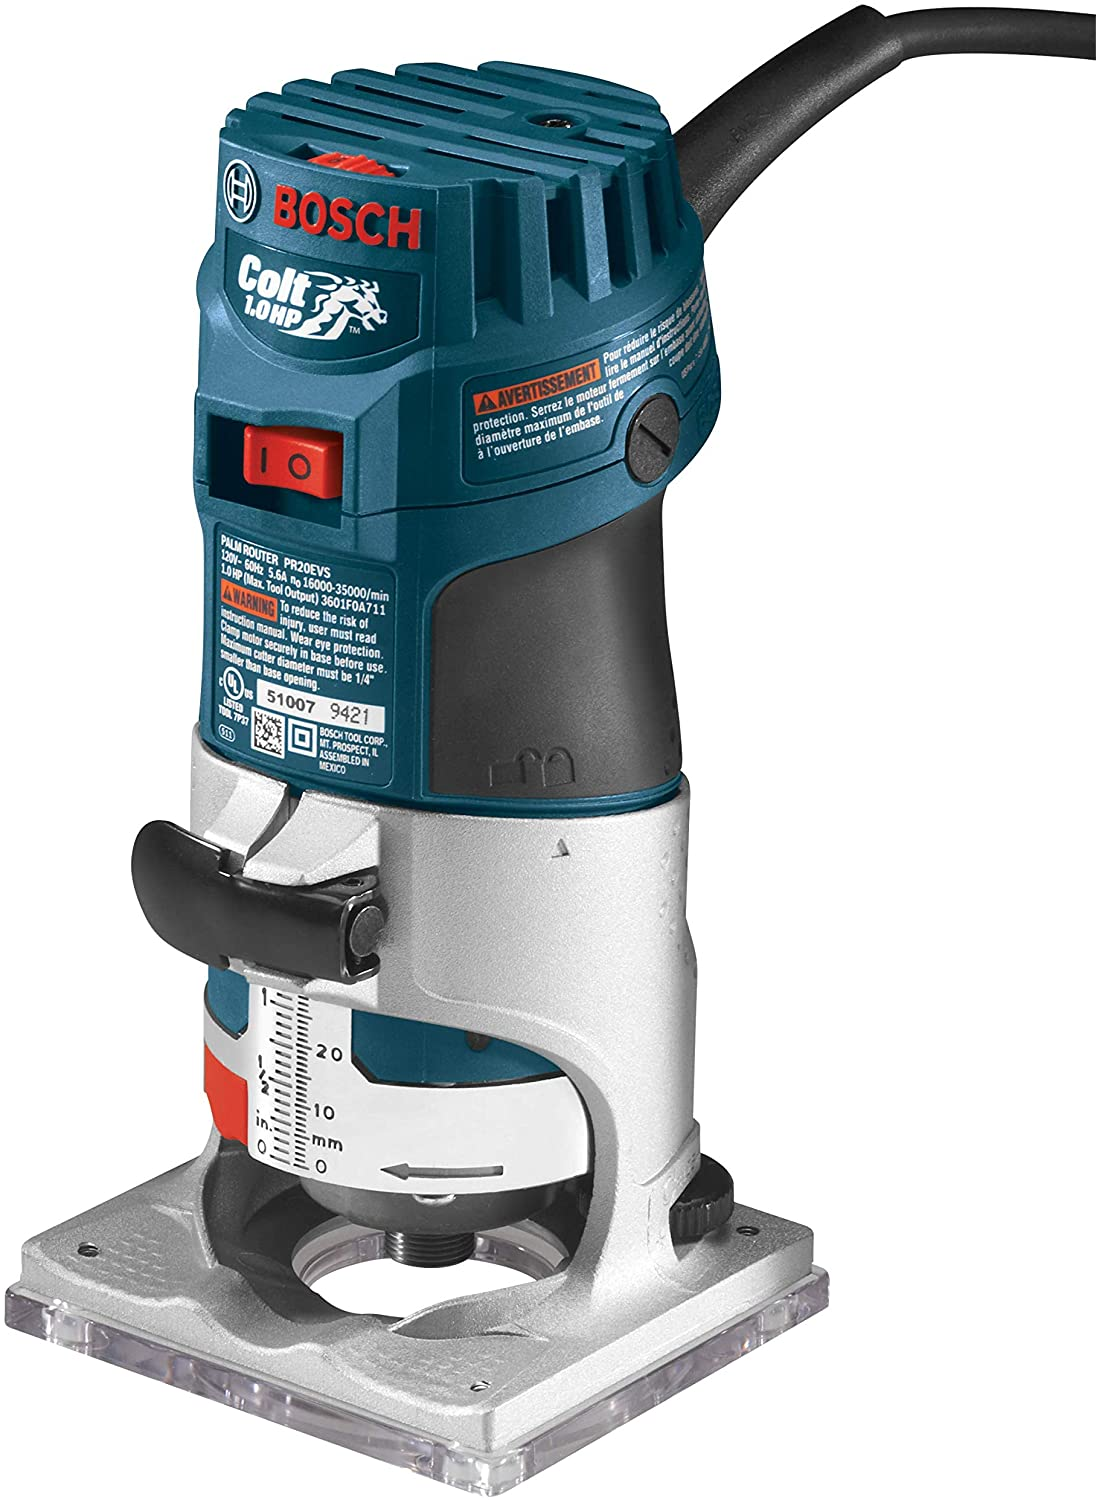 Bosch PR20EVS Variable-Speed Palm Router